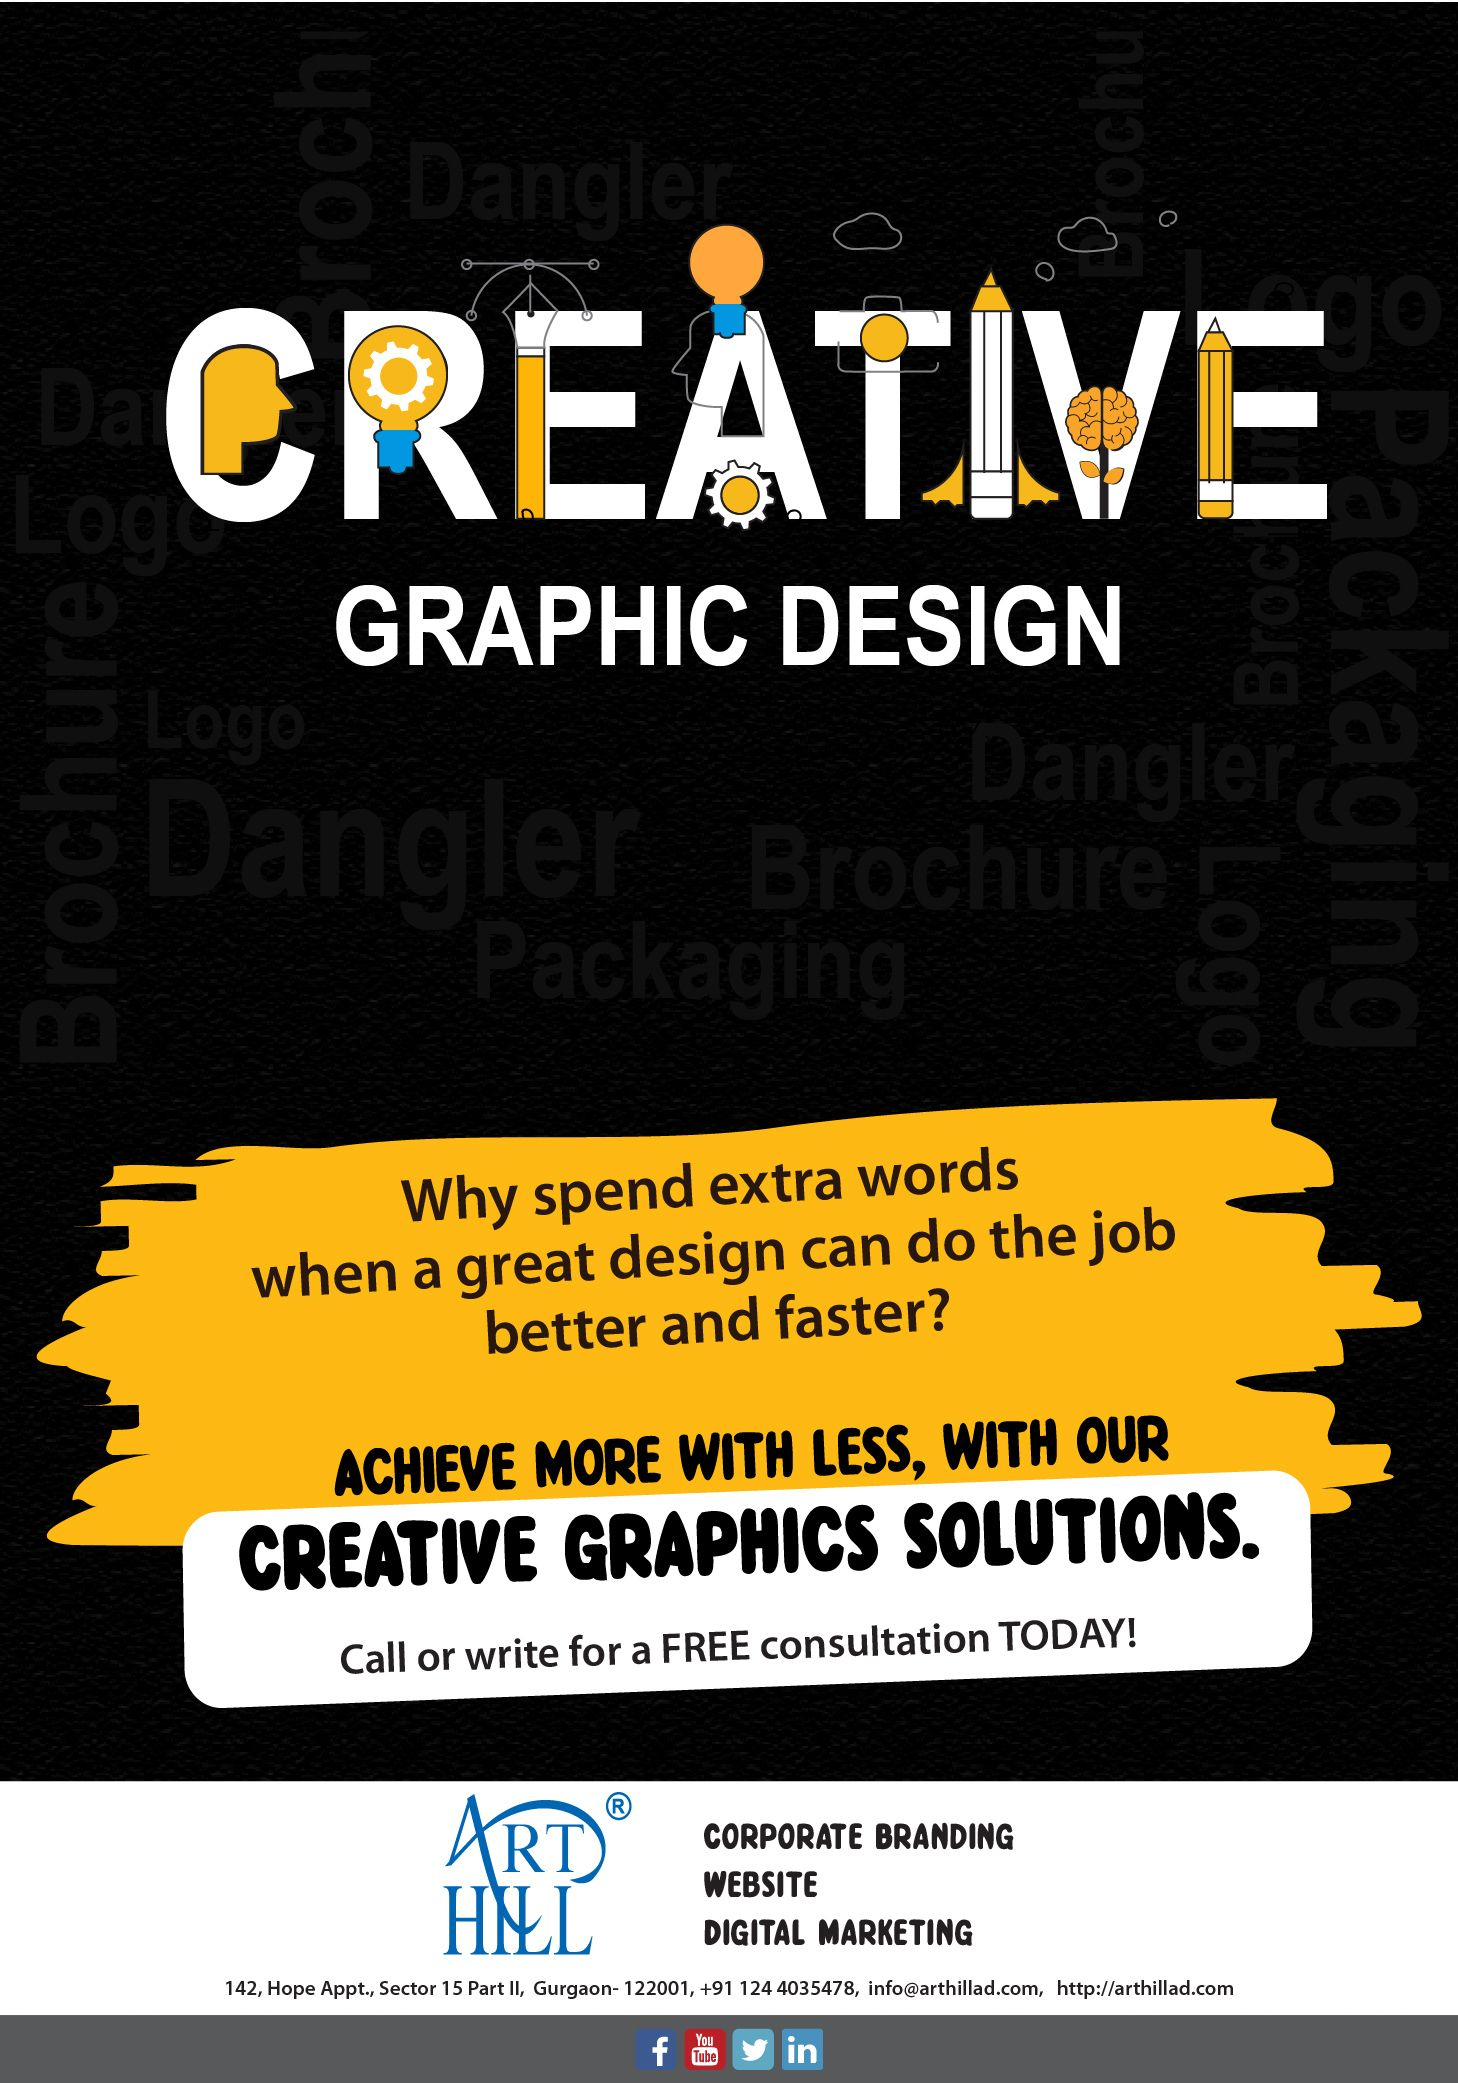 Pin by arthilld on ArtHillAdvertising (With images ...